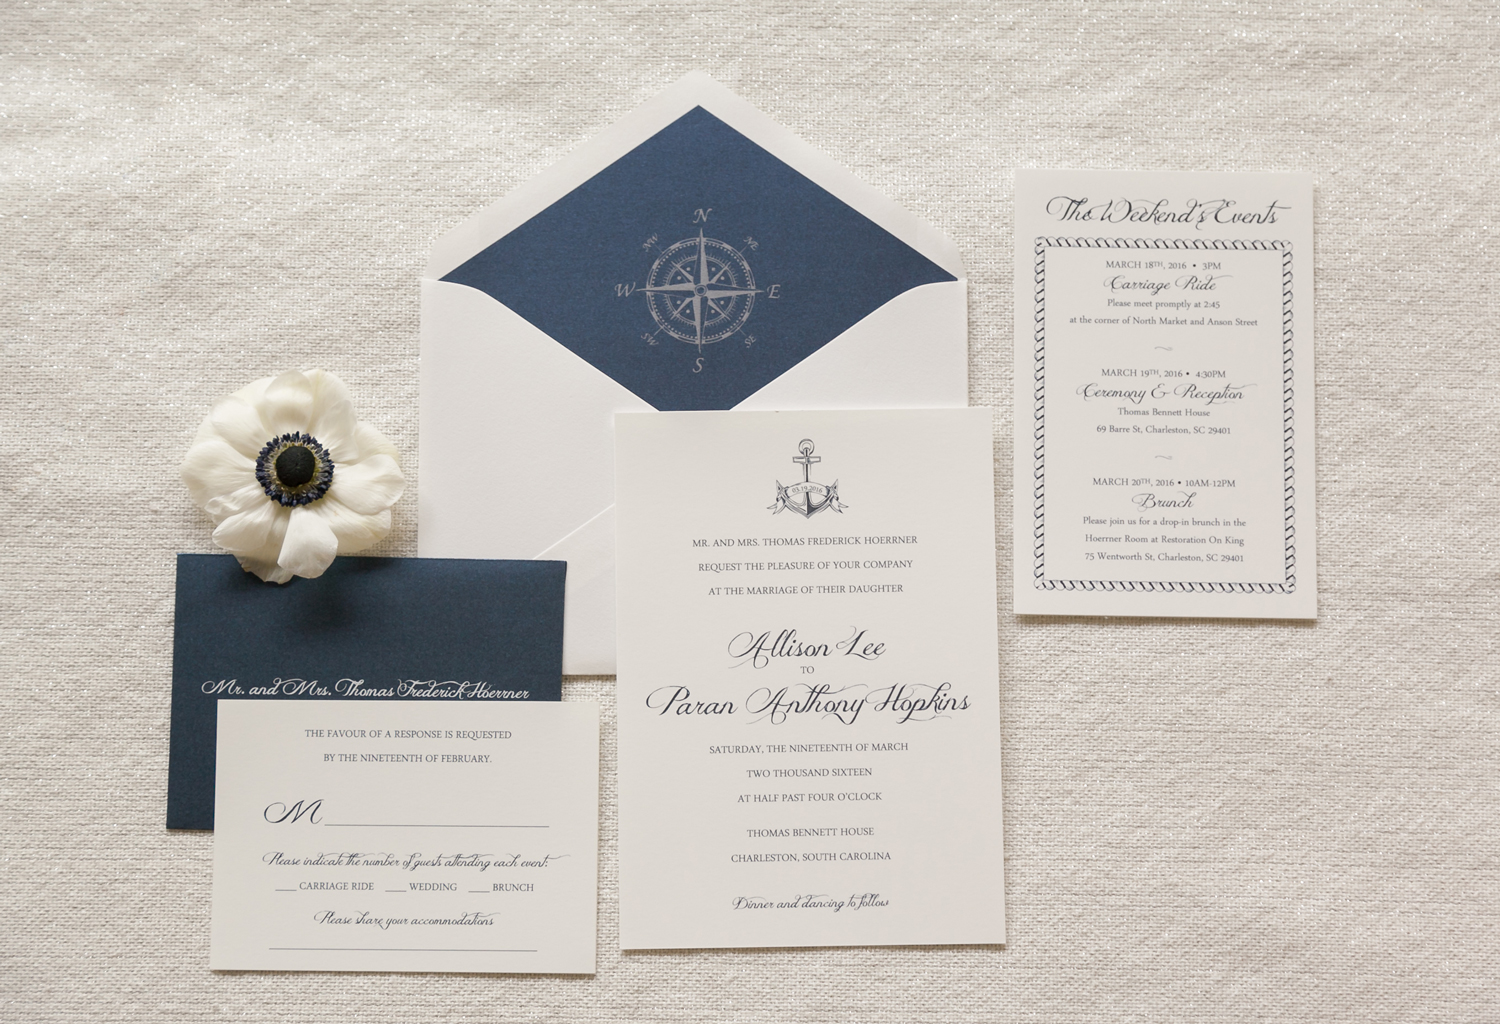 Nautical Wedding Invitation Anchor Invitation Compass Dodeline Design – Nautical Wedding Invite